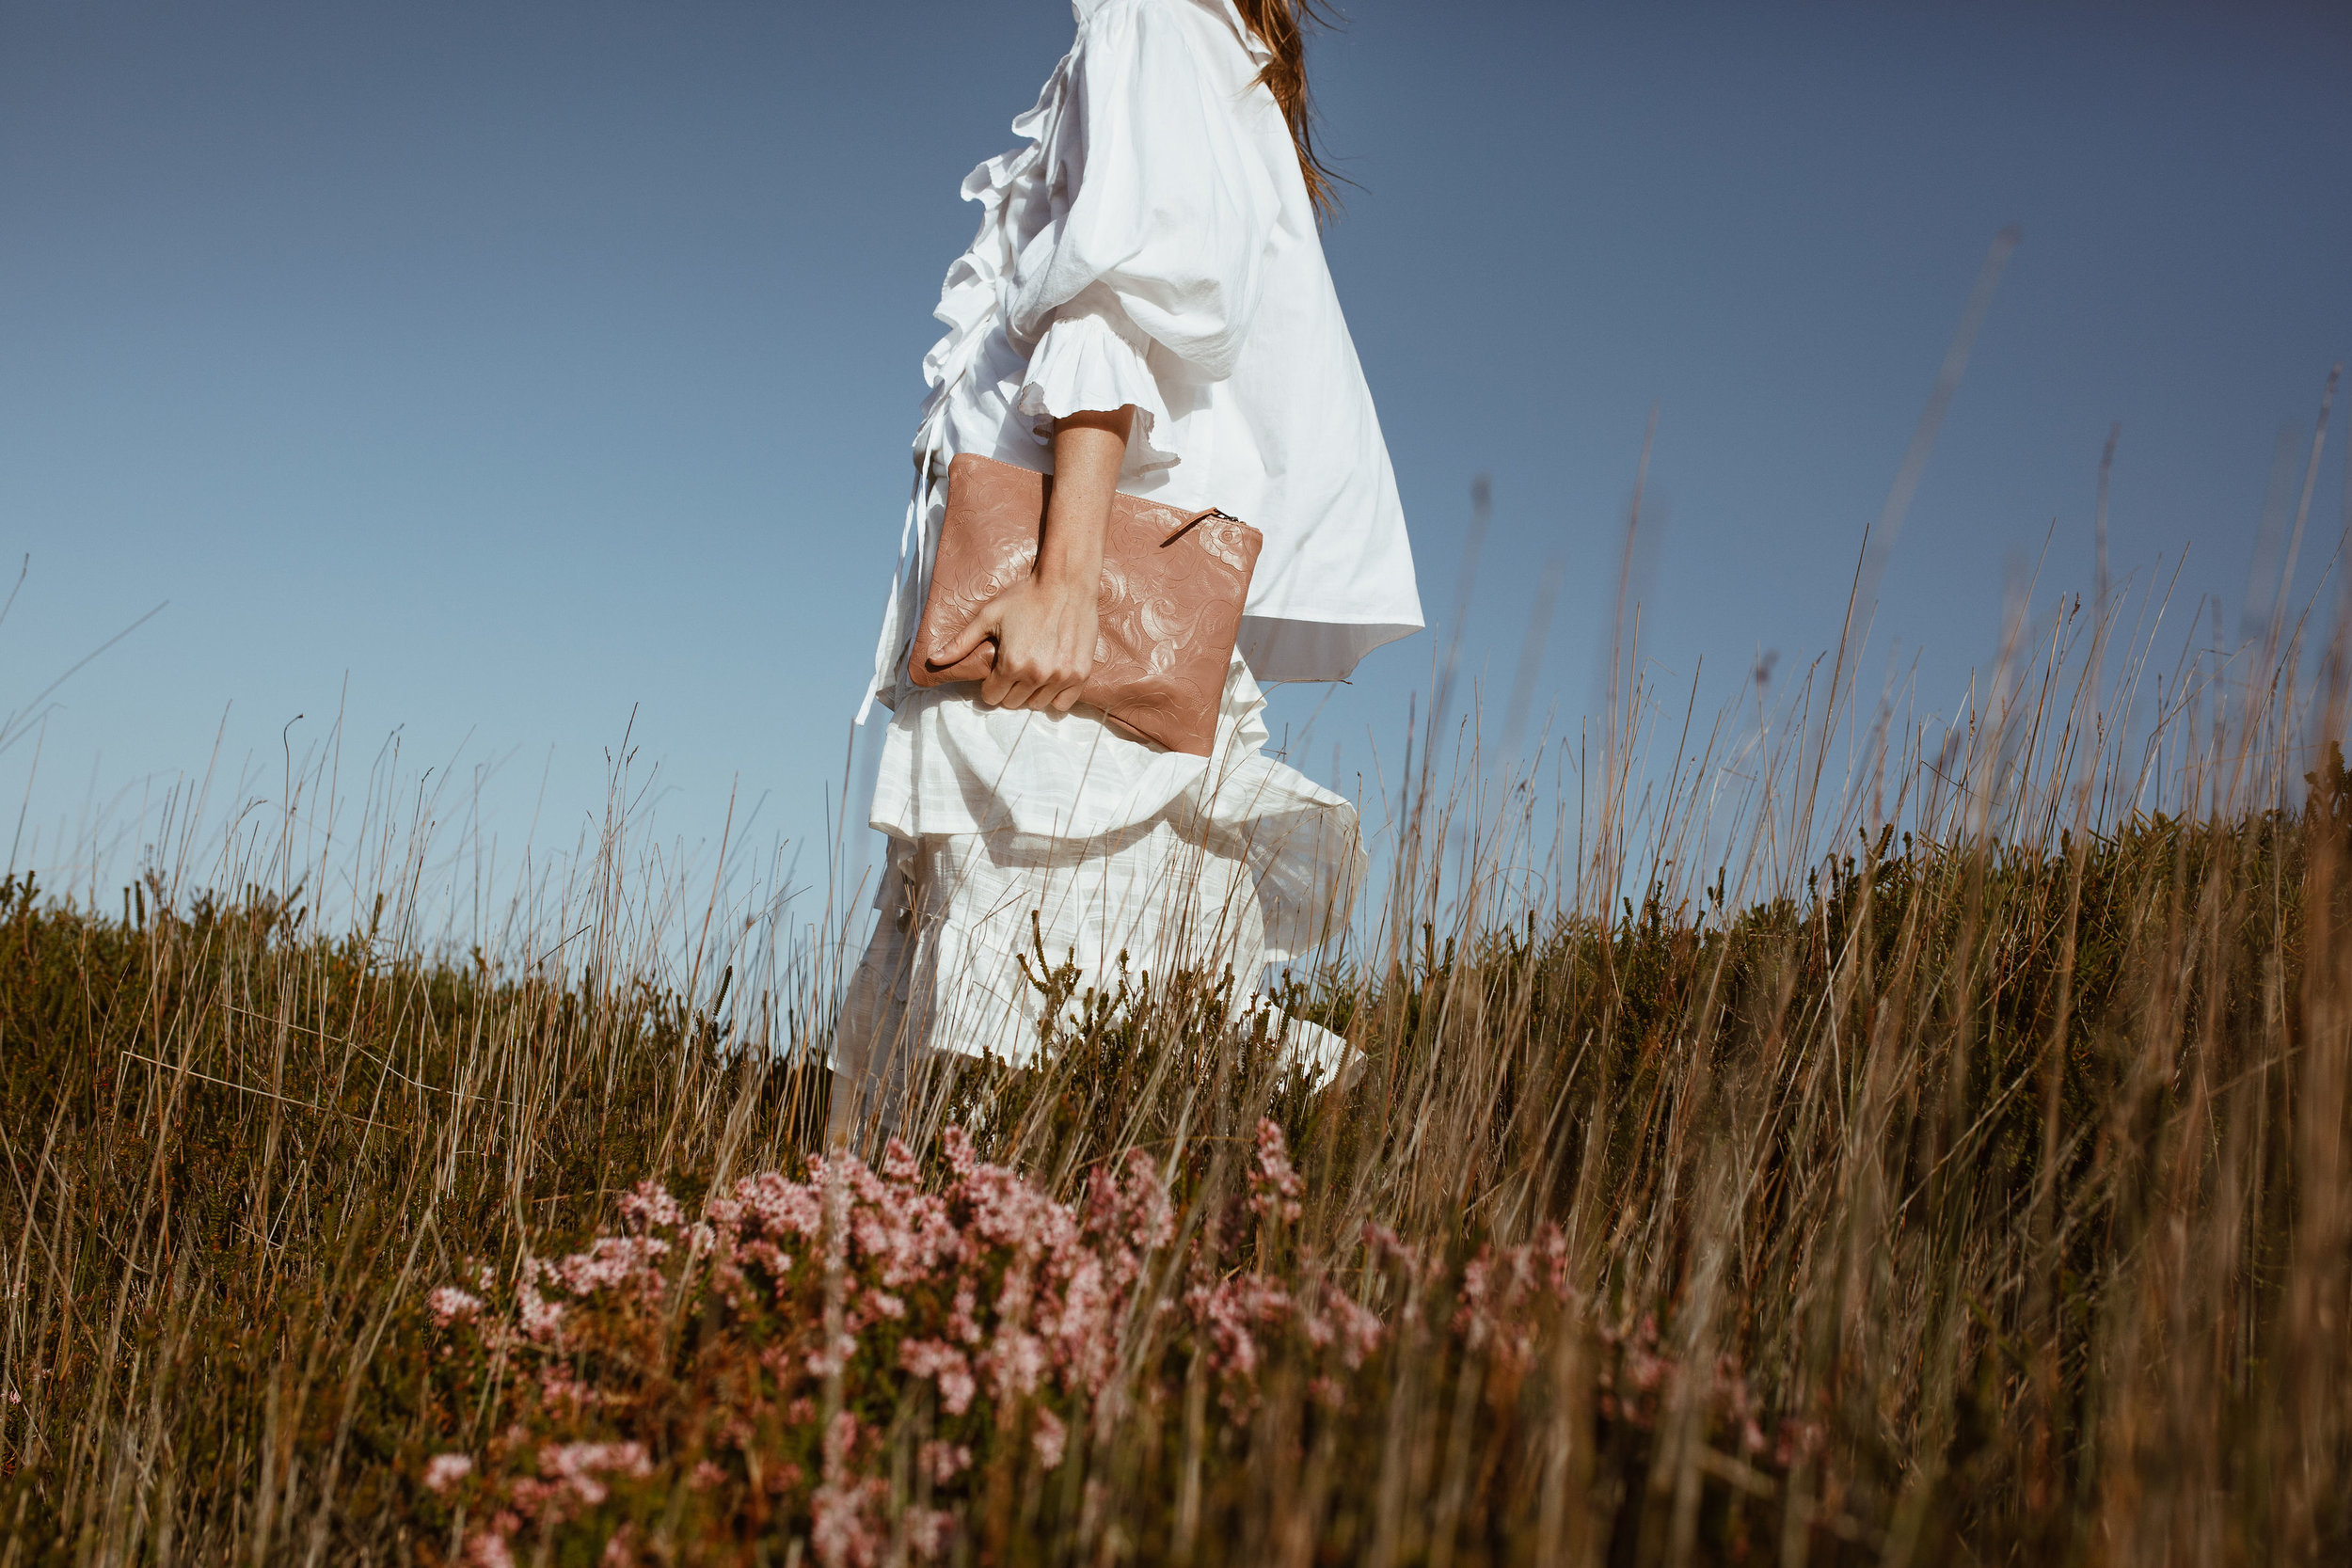 A woman in a white dress walking through a field with a blush KARMME leather clutch in her hand